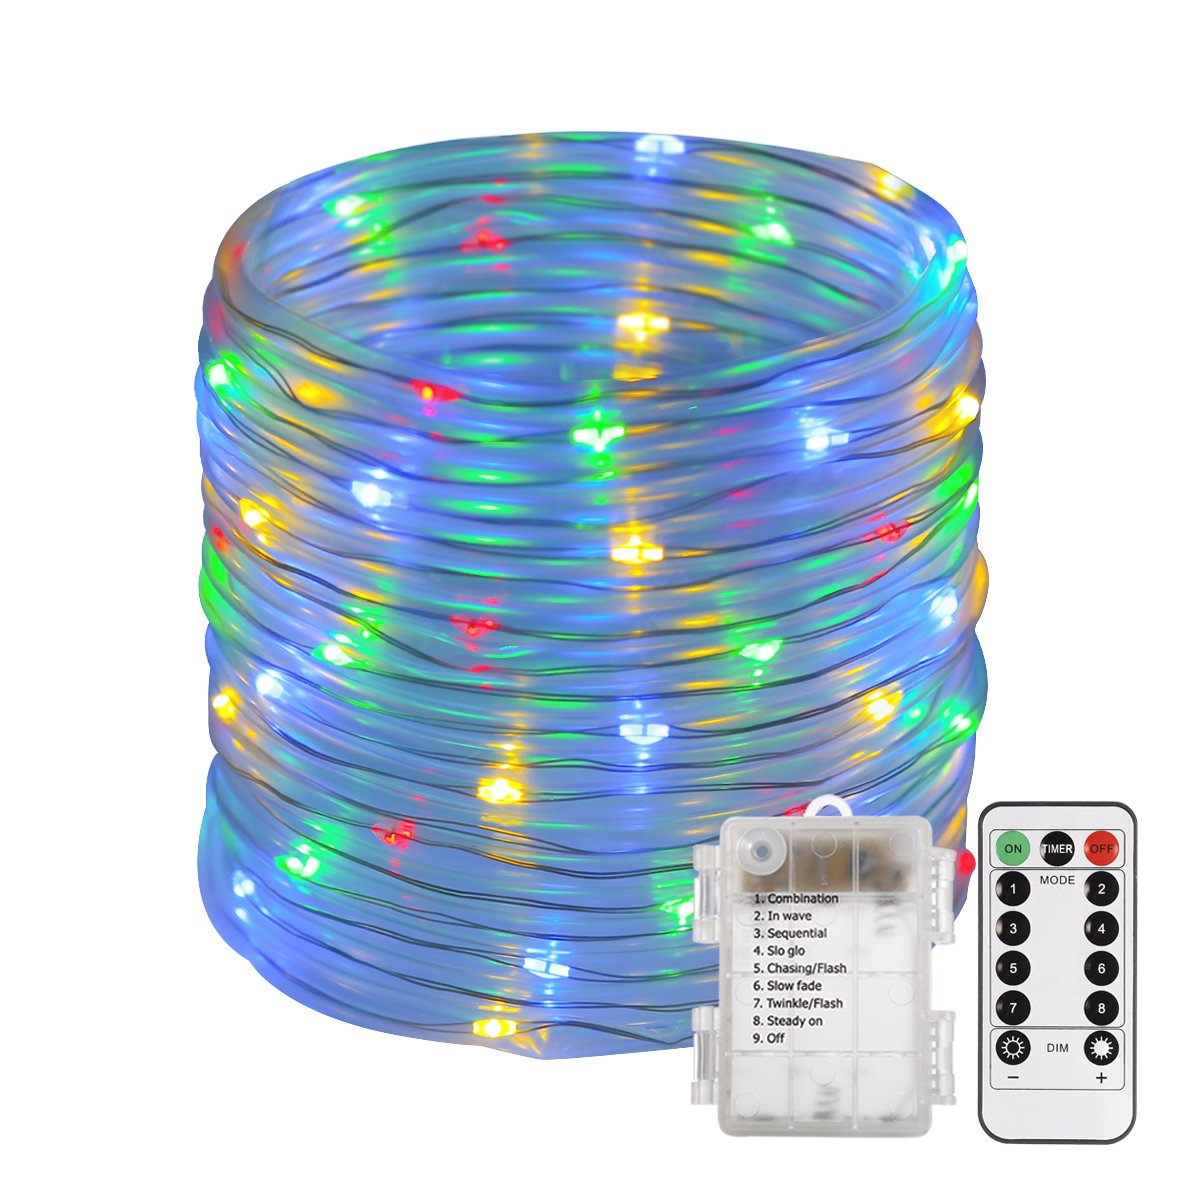 ECOWHO 46ft Outdoor String Lights IP67 Waterproof Fairy Lights Battery Powered for Home, Patio, Garden,Christmas with Remote (Multicolor)